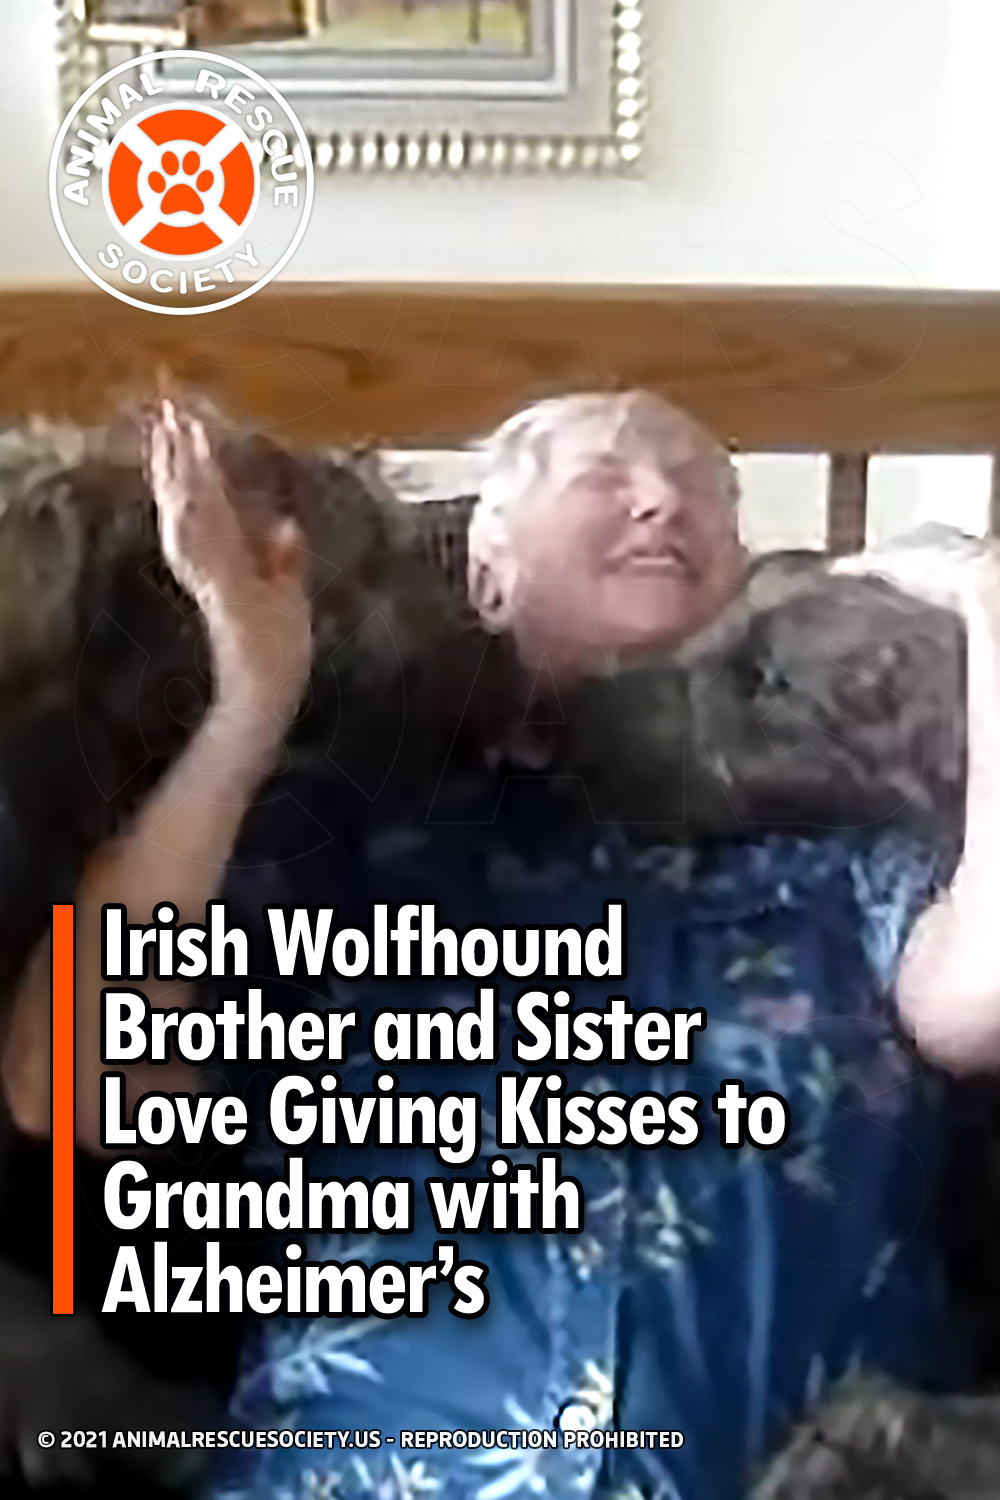 Irish Wolfhound Brother and Sister Love Giving Kisses to Grandma with Alzheimer's